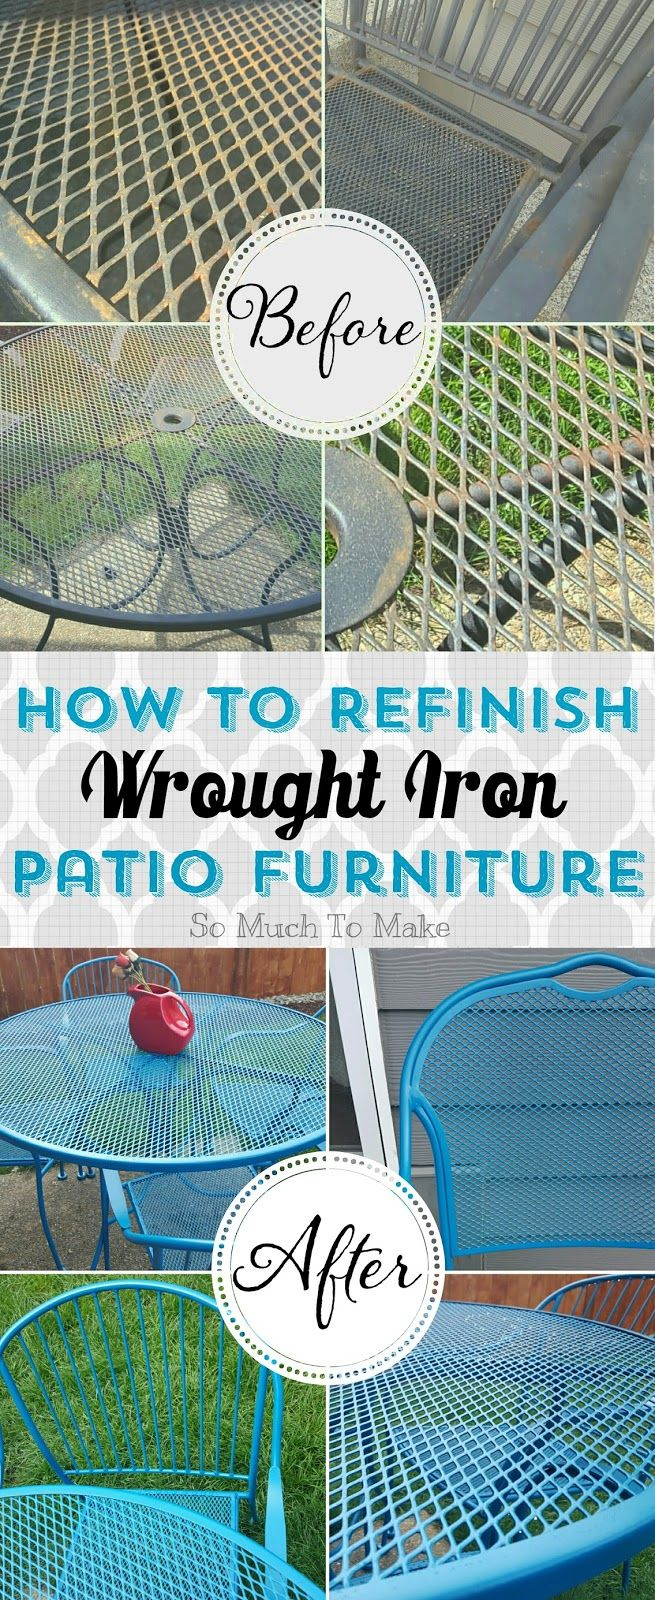 Charming How To Refinish Wrought Iron Patio Furniture | Iron Patio Furniture, Wrought  Iron And Patios